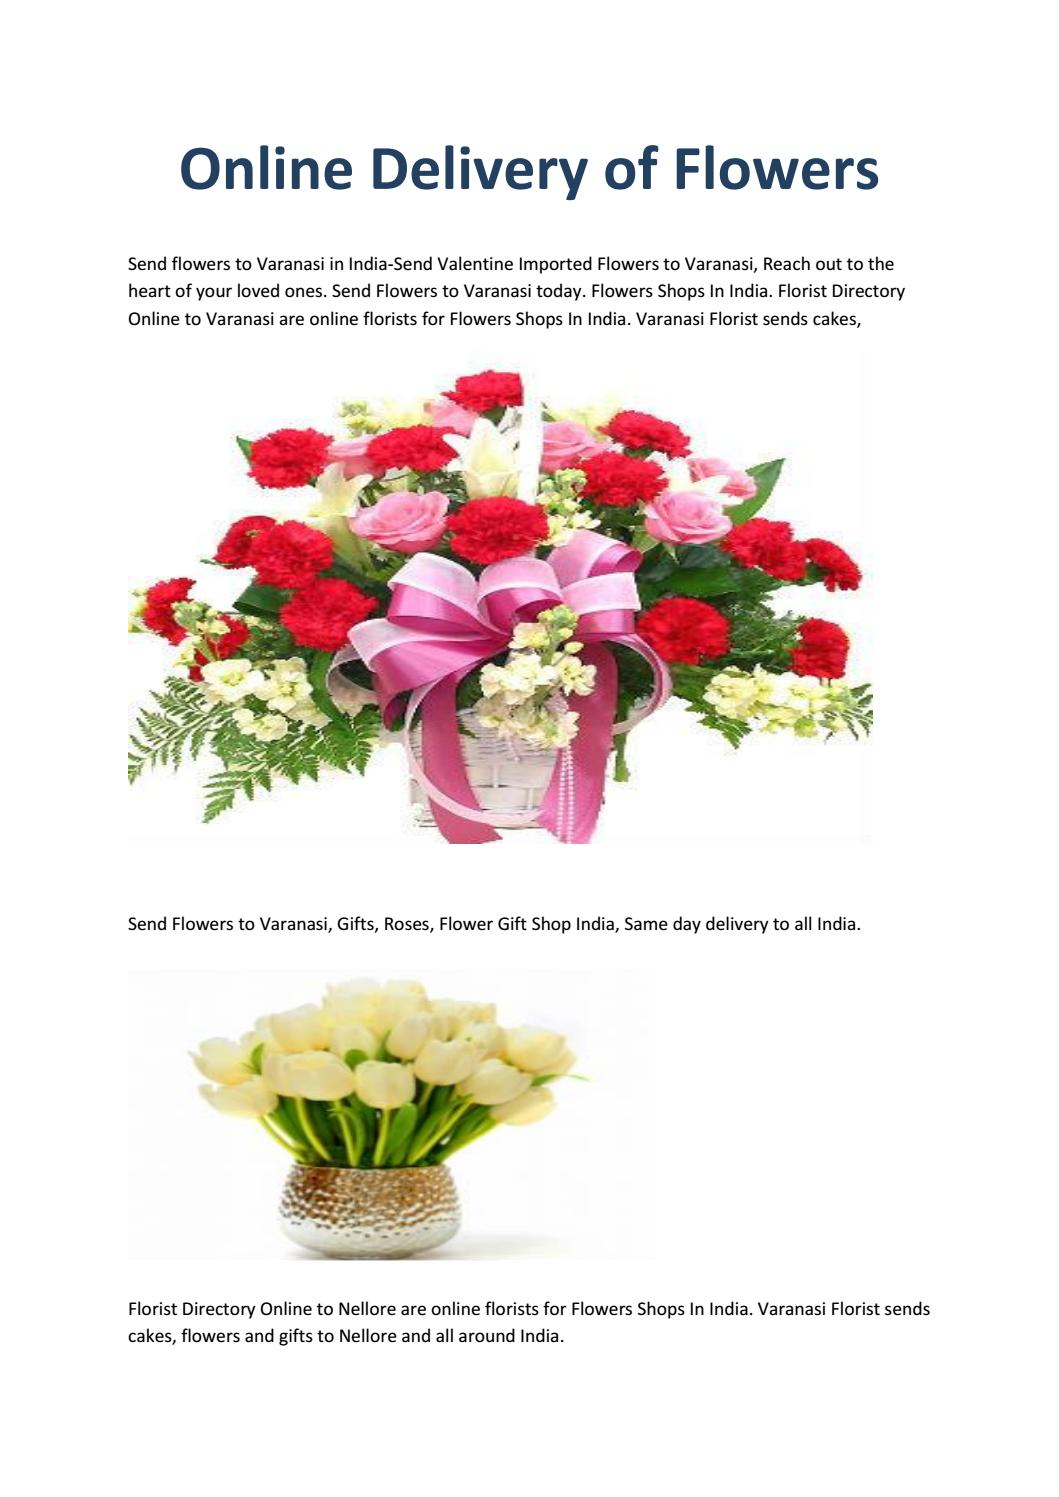 Sweets to delhi florist delhi 8800675678 by floristhff issuu izmirmasajfo